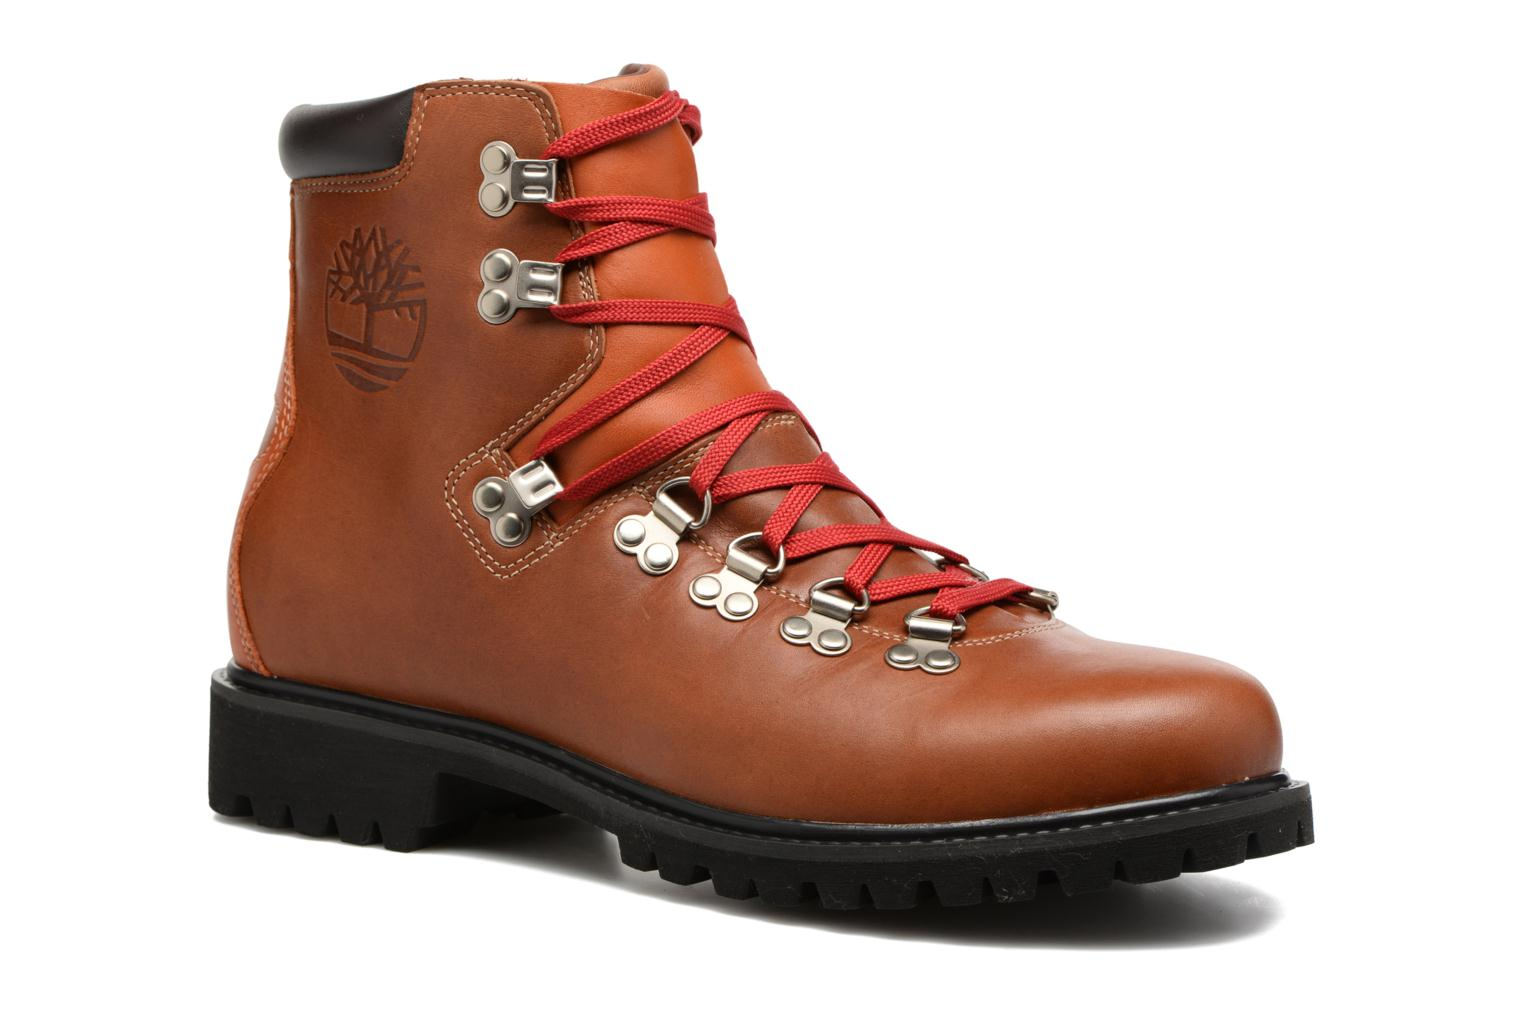 Bottines et boots Timberland 1978 Hike WP Marron vue détail/paire